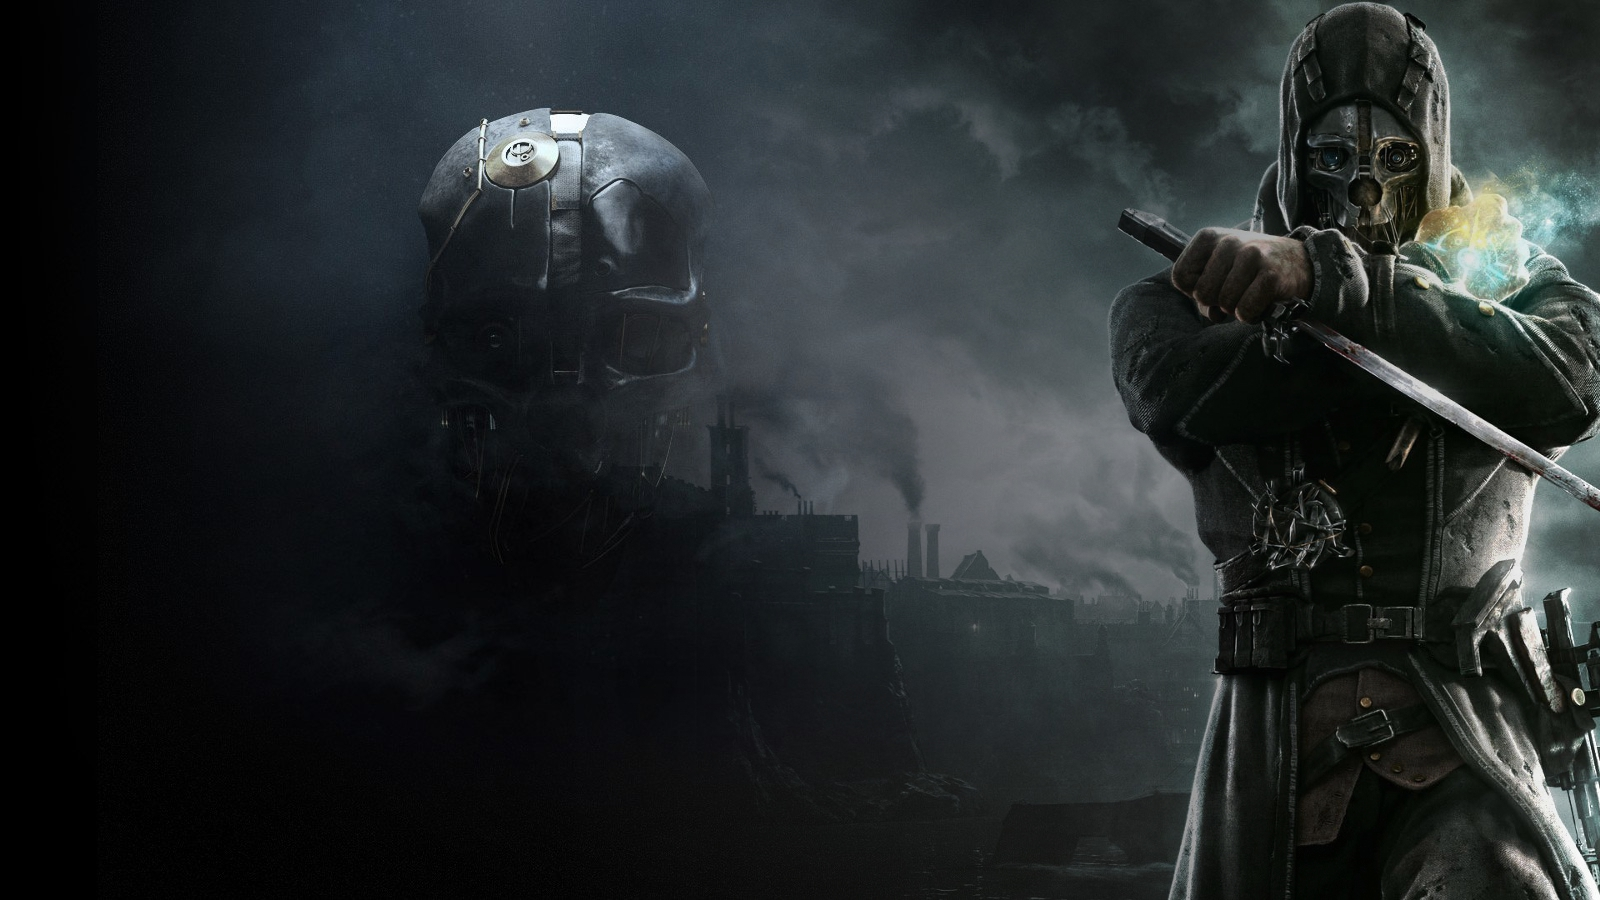 Dishonored - Corvo Attano + Mask by MeGustaDeviantart